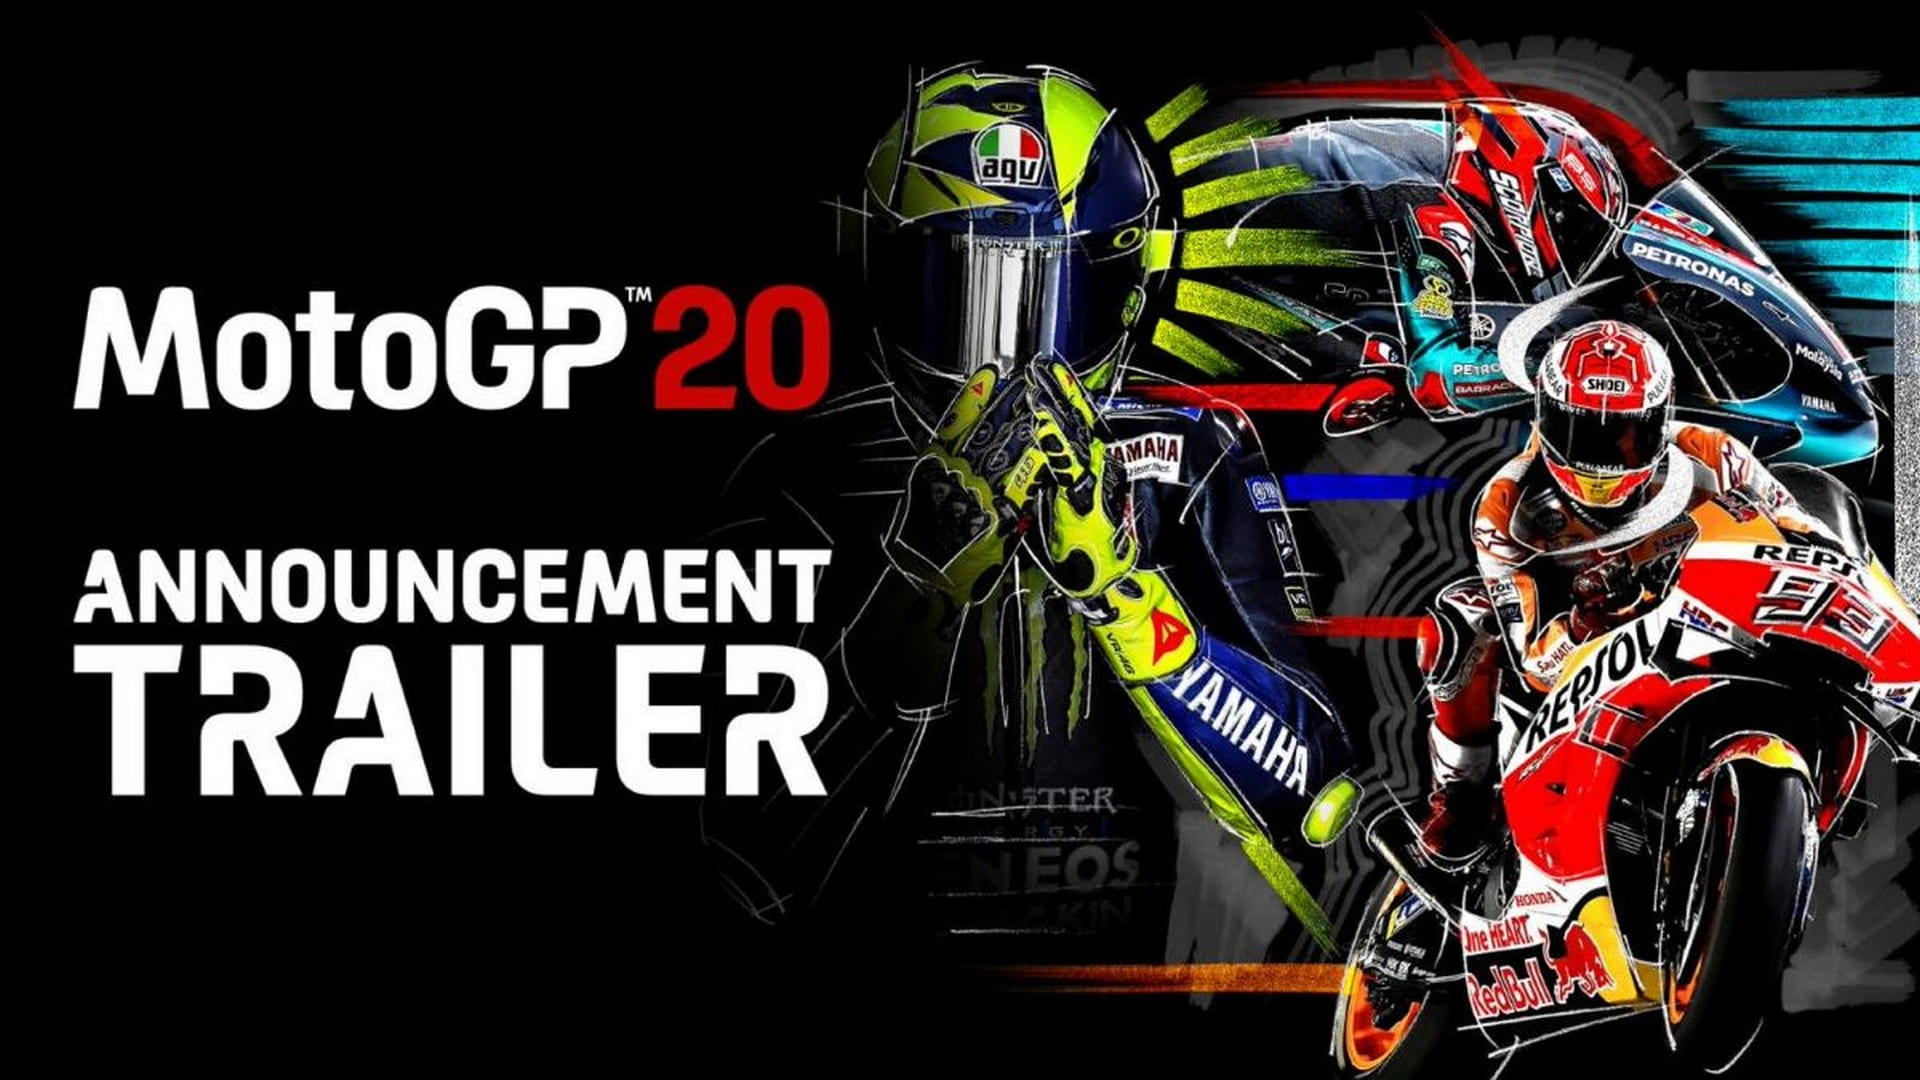 Milestone And Dorna Back On Track With MotoGP 20 On April 23rd